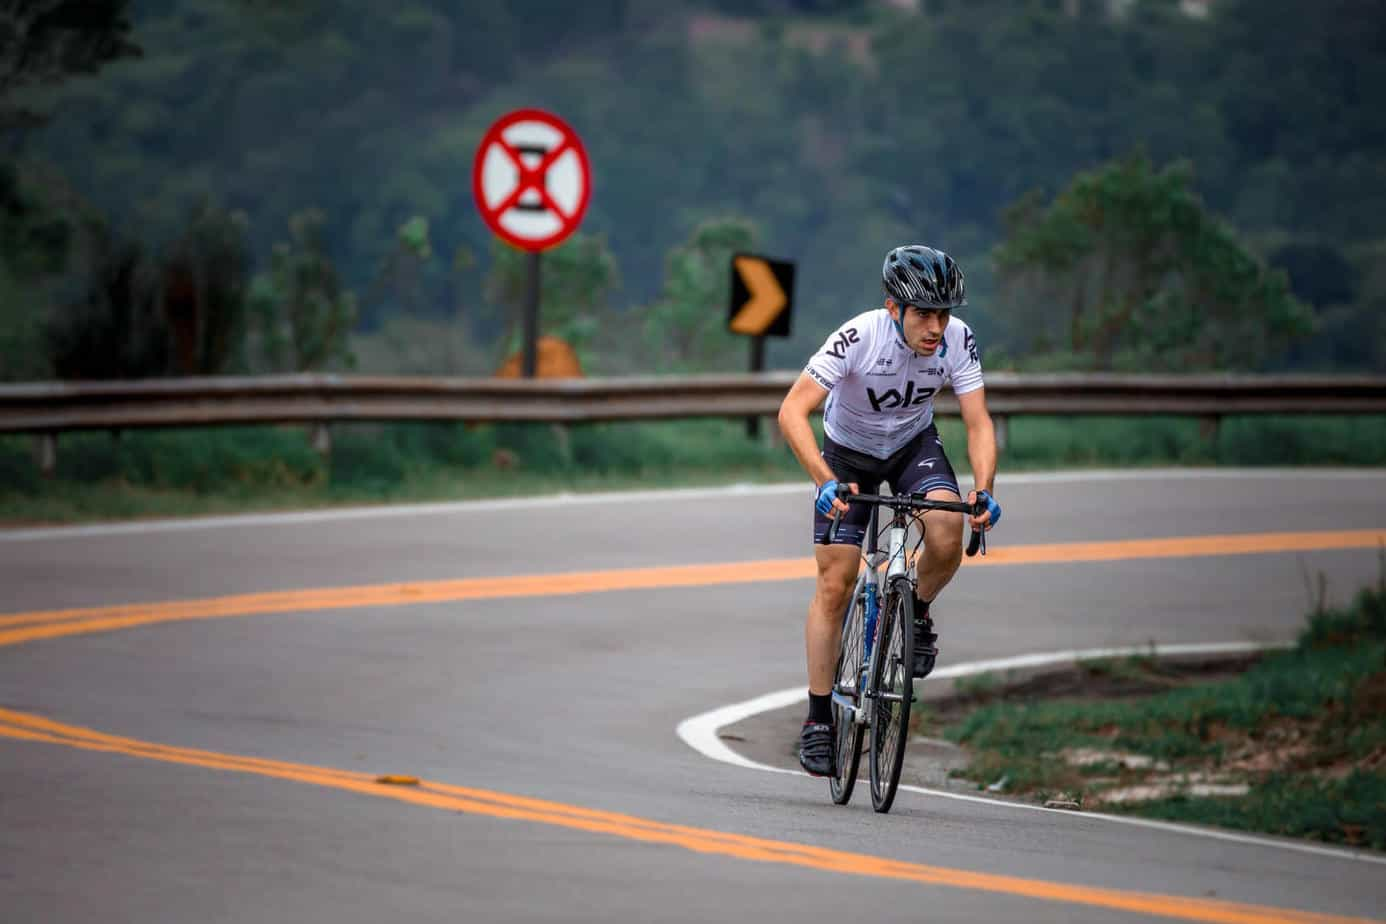 Cyclist biking uphill with strong mentality